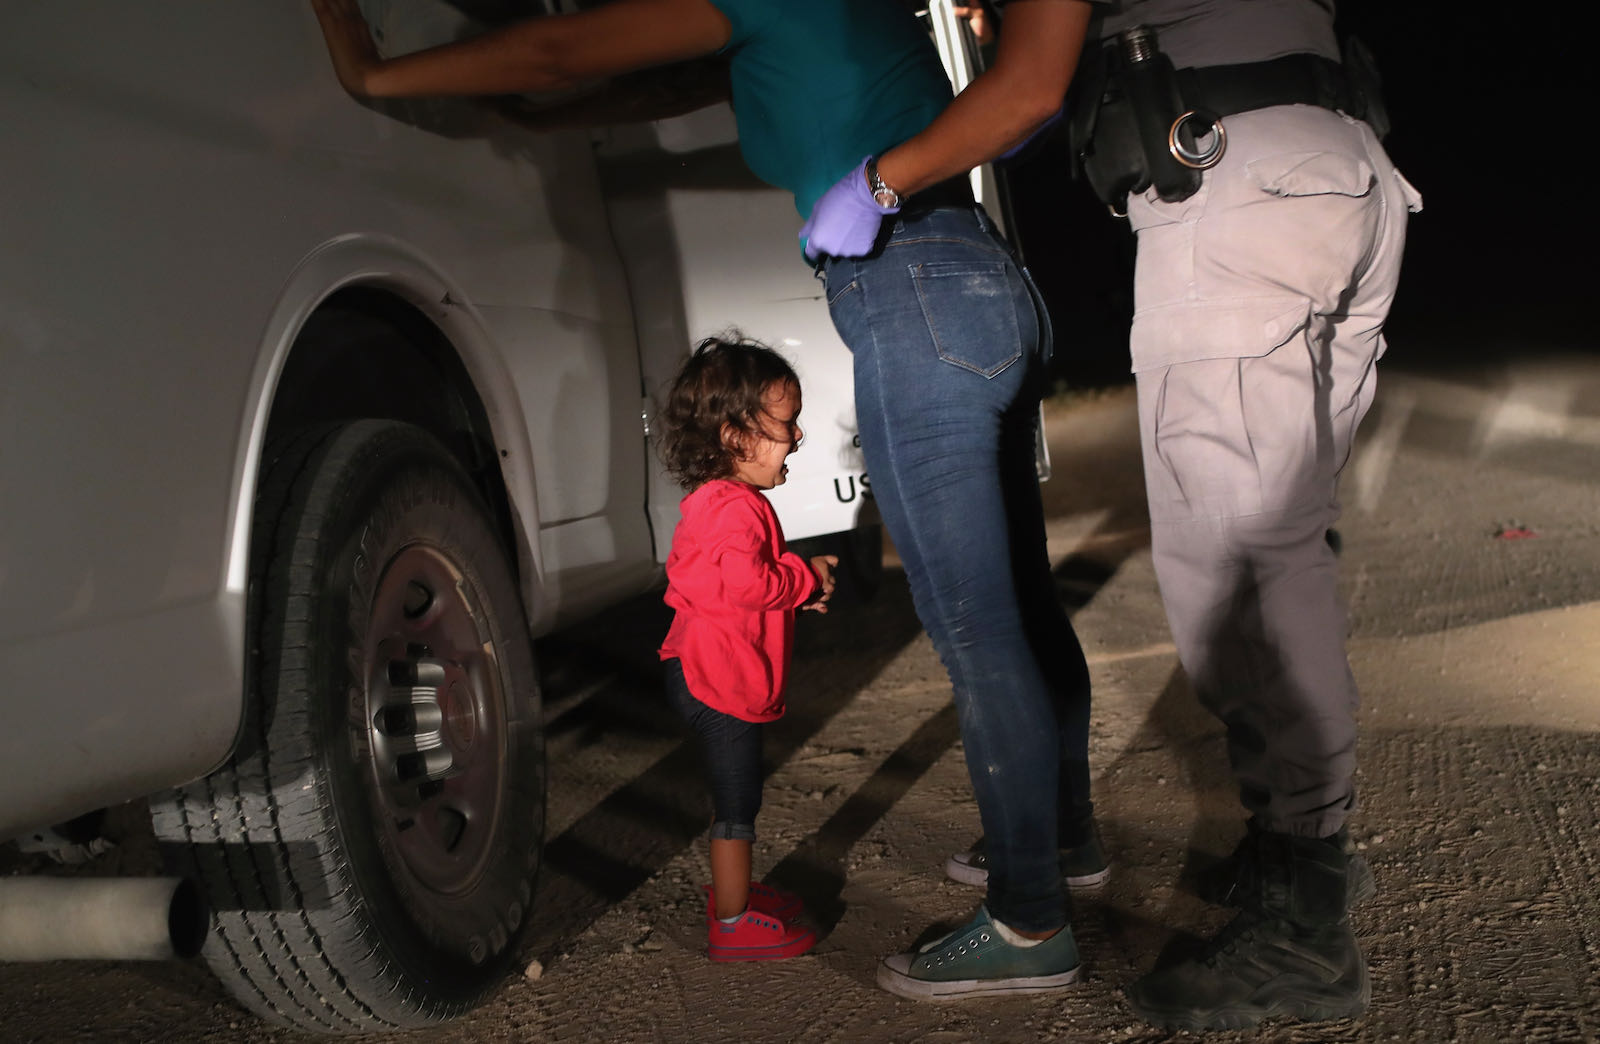 A two-year-old Honduran asylum-seeker crying as her mother is searched and detained near the US-Mexico border